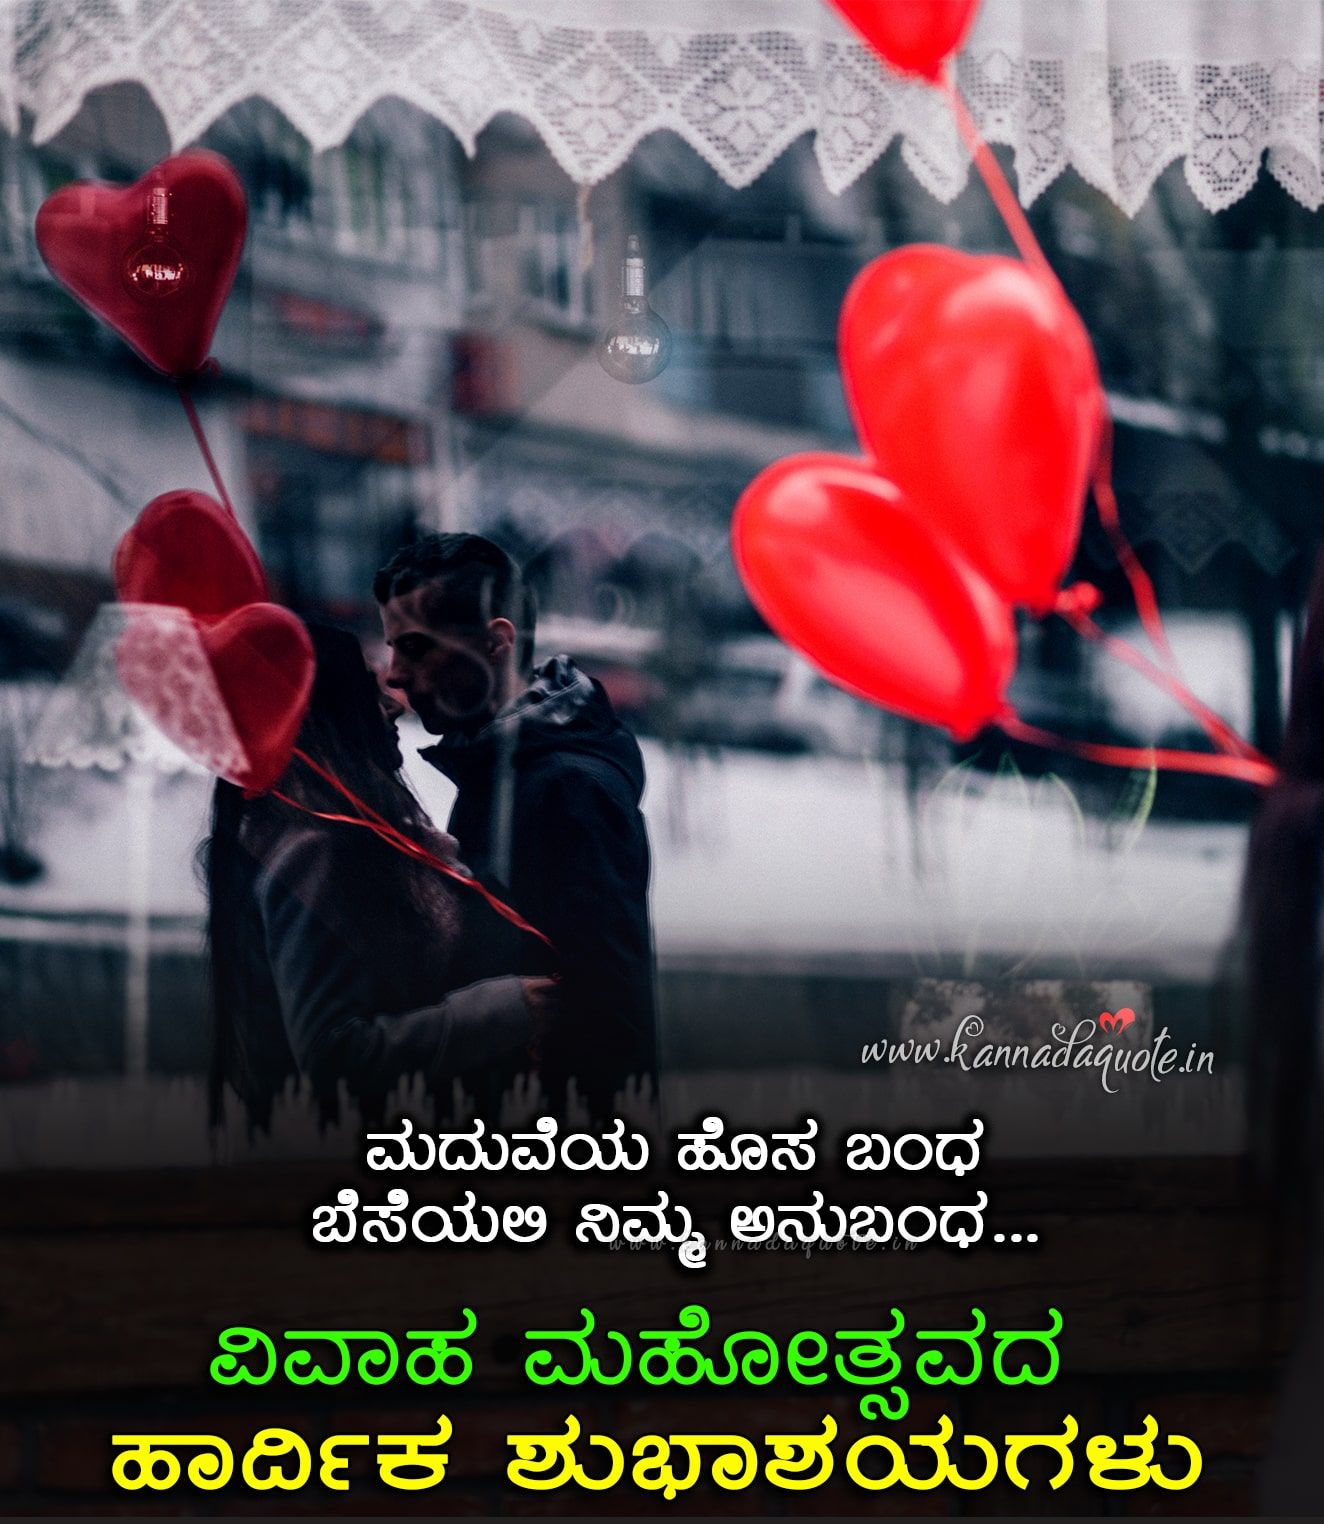 How To Say Happy Wedding Anniversary In Kannada In 2020 Wedding Anniversary Wishes Happy Wedding Anniversary Wishes Happy Wedding